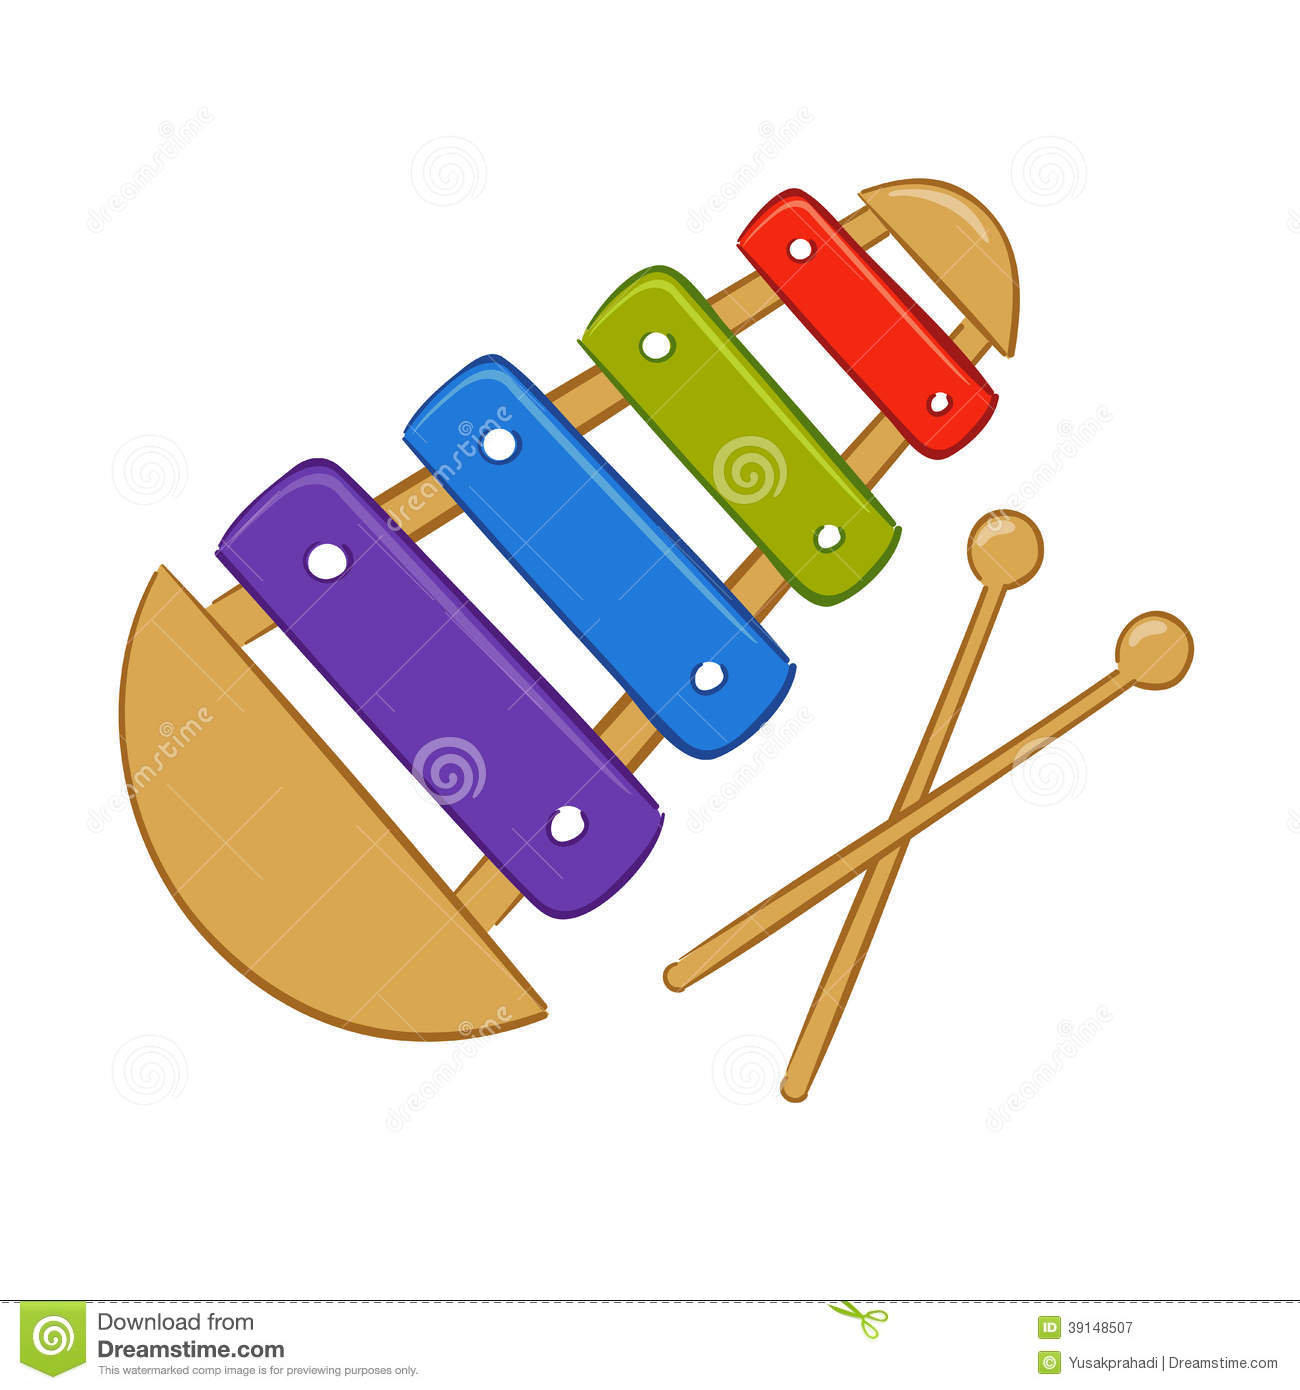 Xylophone Cartoon Stock Vector - Image: 39148507